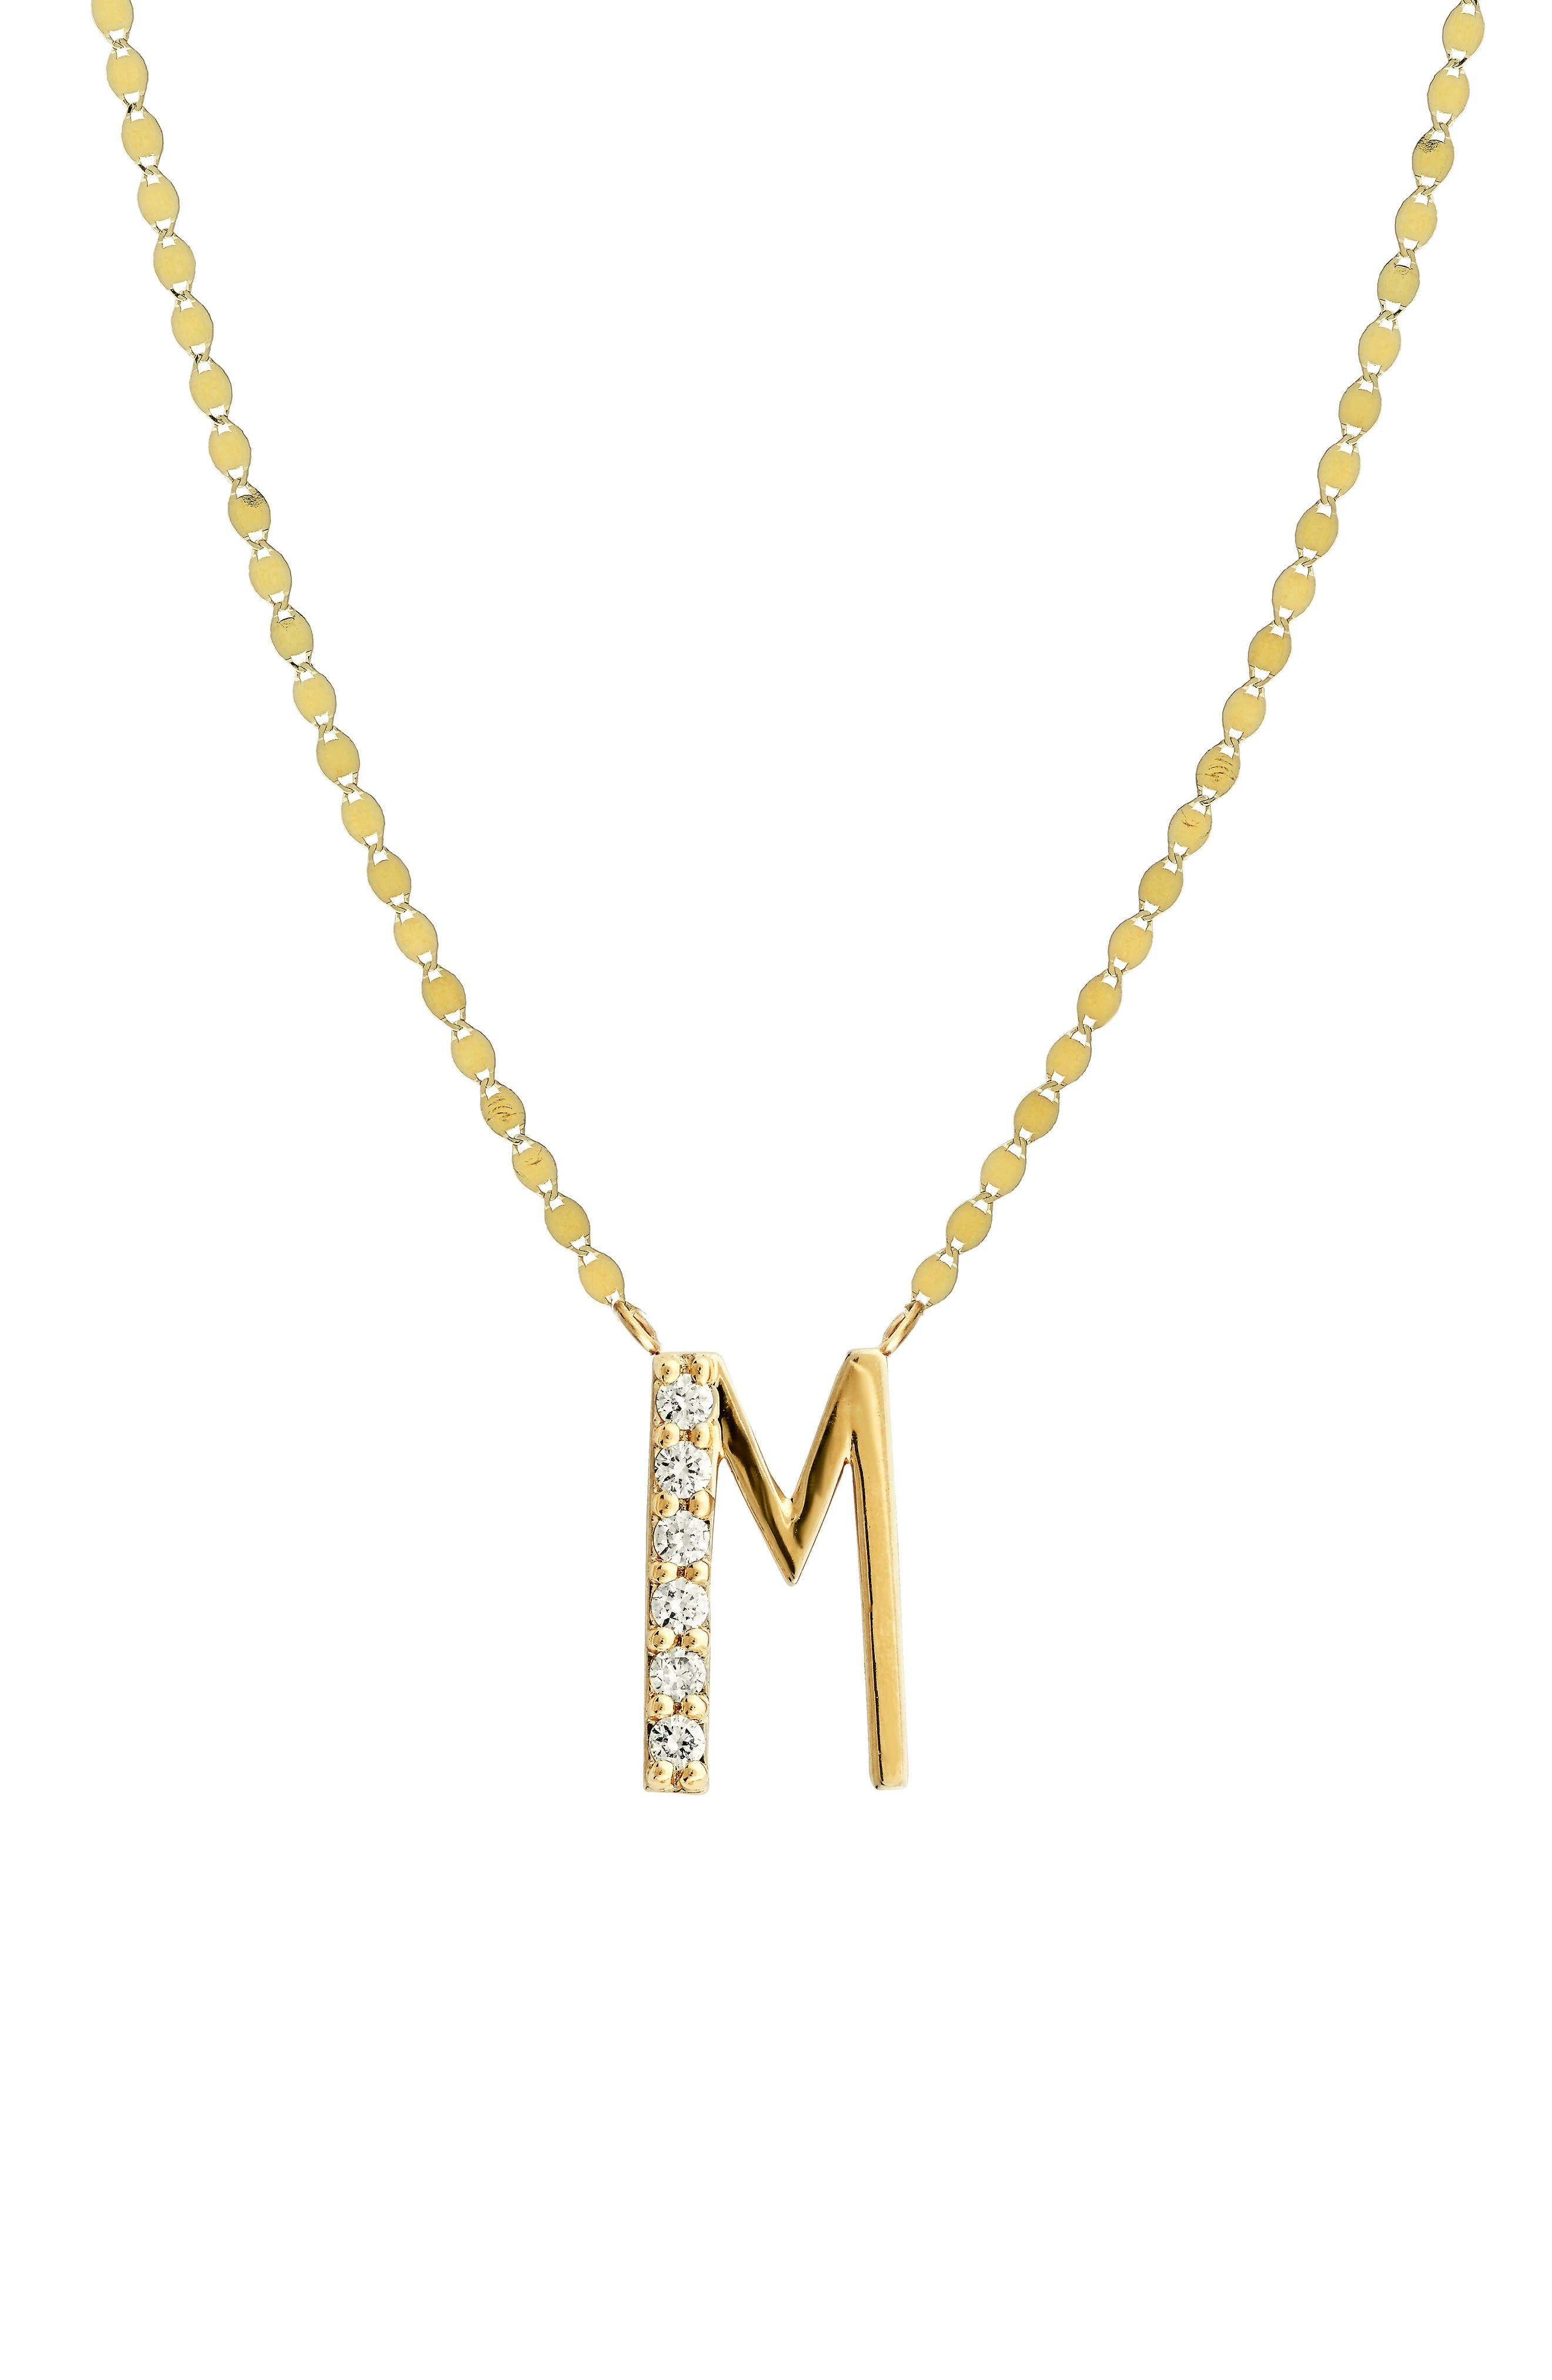 Initial Pendant Necklace,                             Main thumbnail 1, color,                             YELLOW GOLD- M